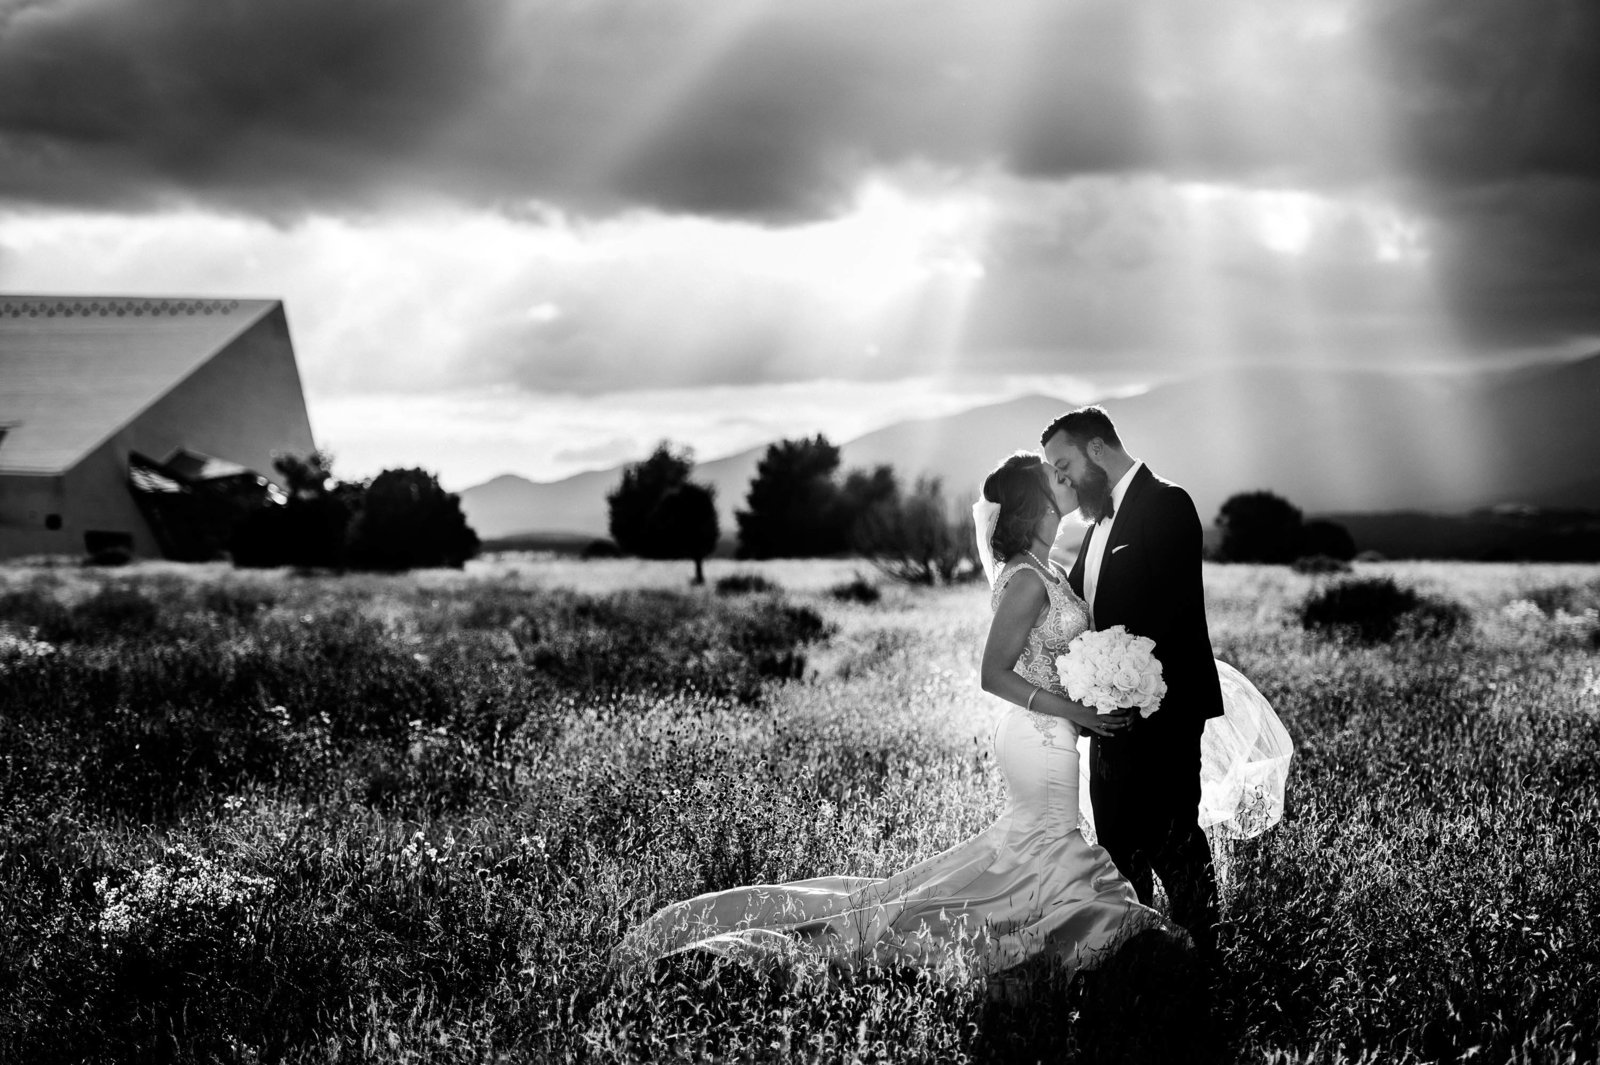 223-El-paso-wedding-photographer-ArKe_0611